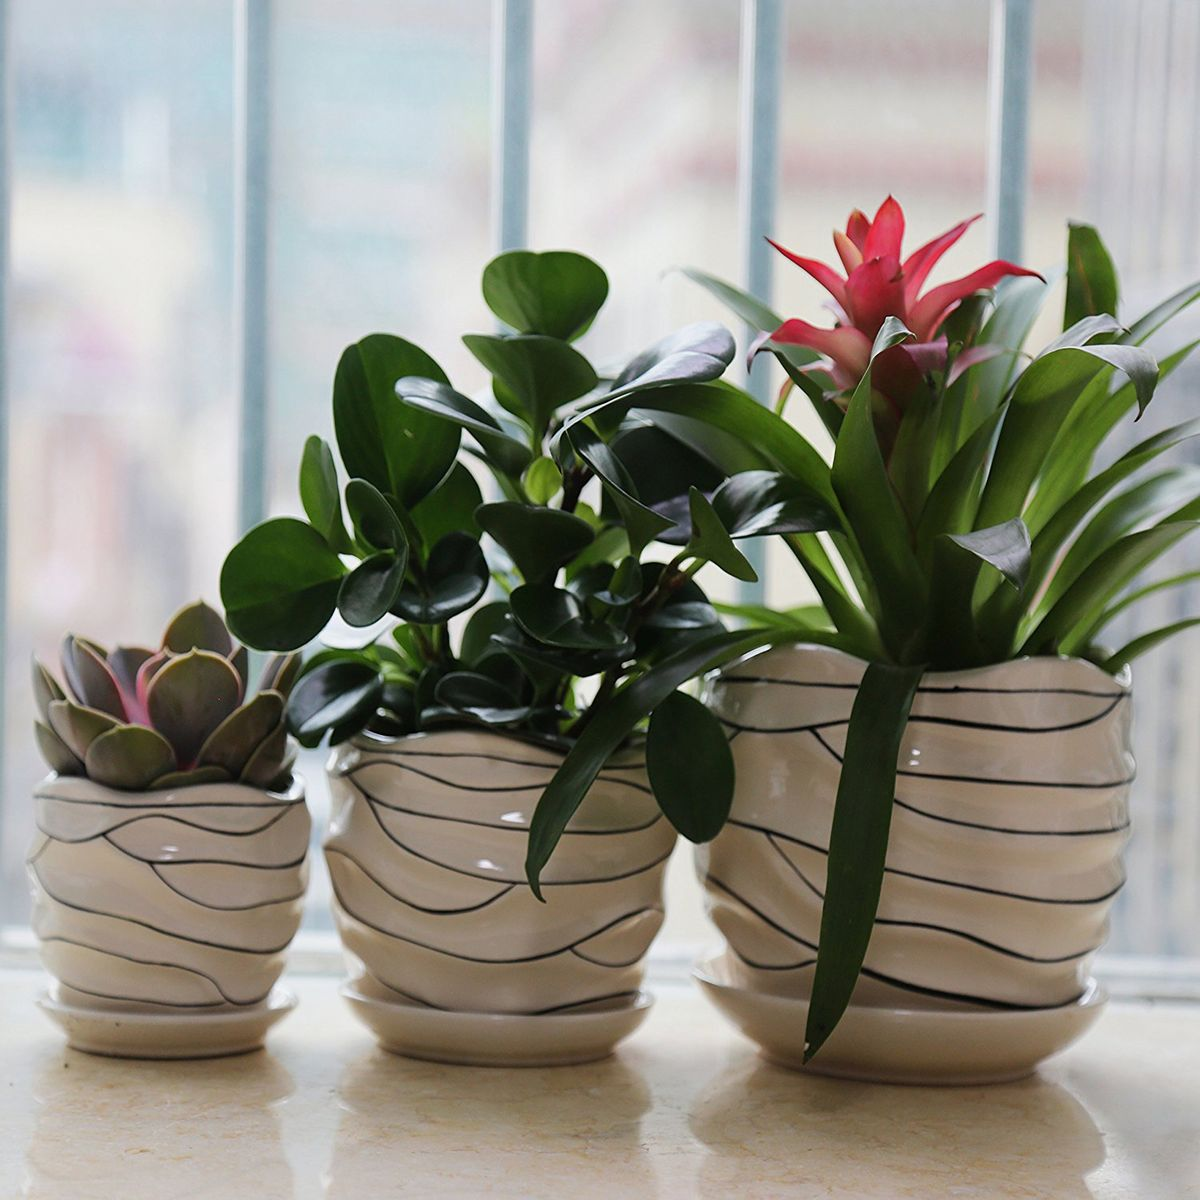 Modern Geometric Ceramic Tabletop Flower Pots MAKES A GREAT GIFT IDEA!